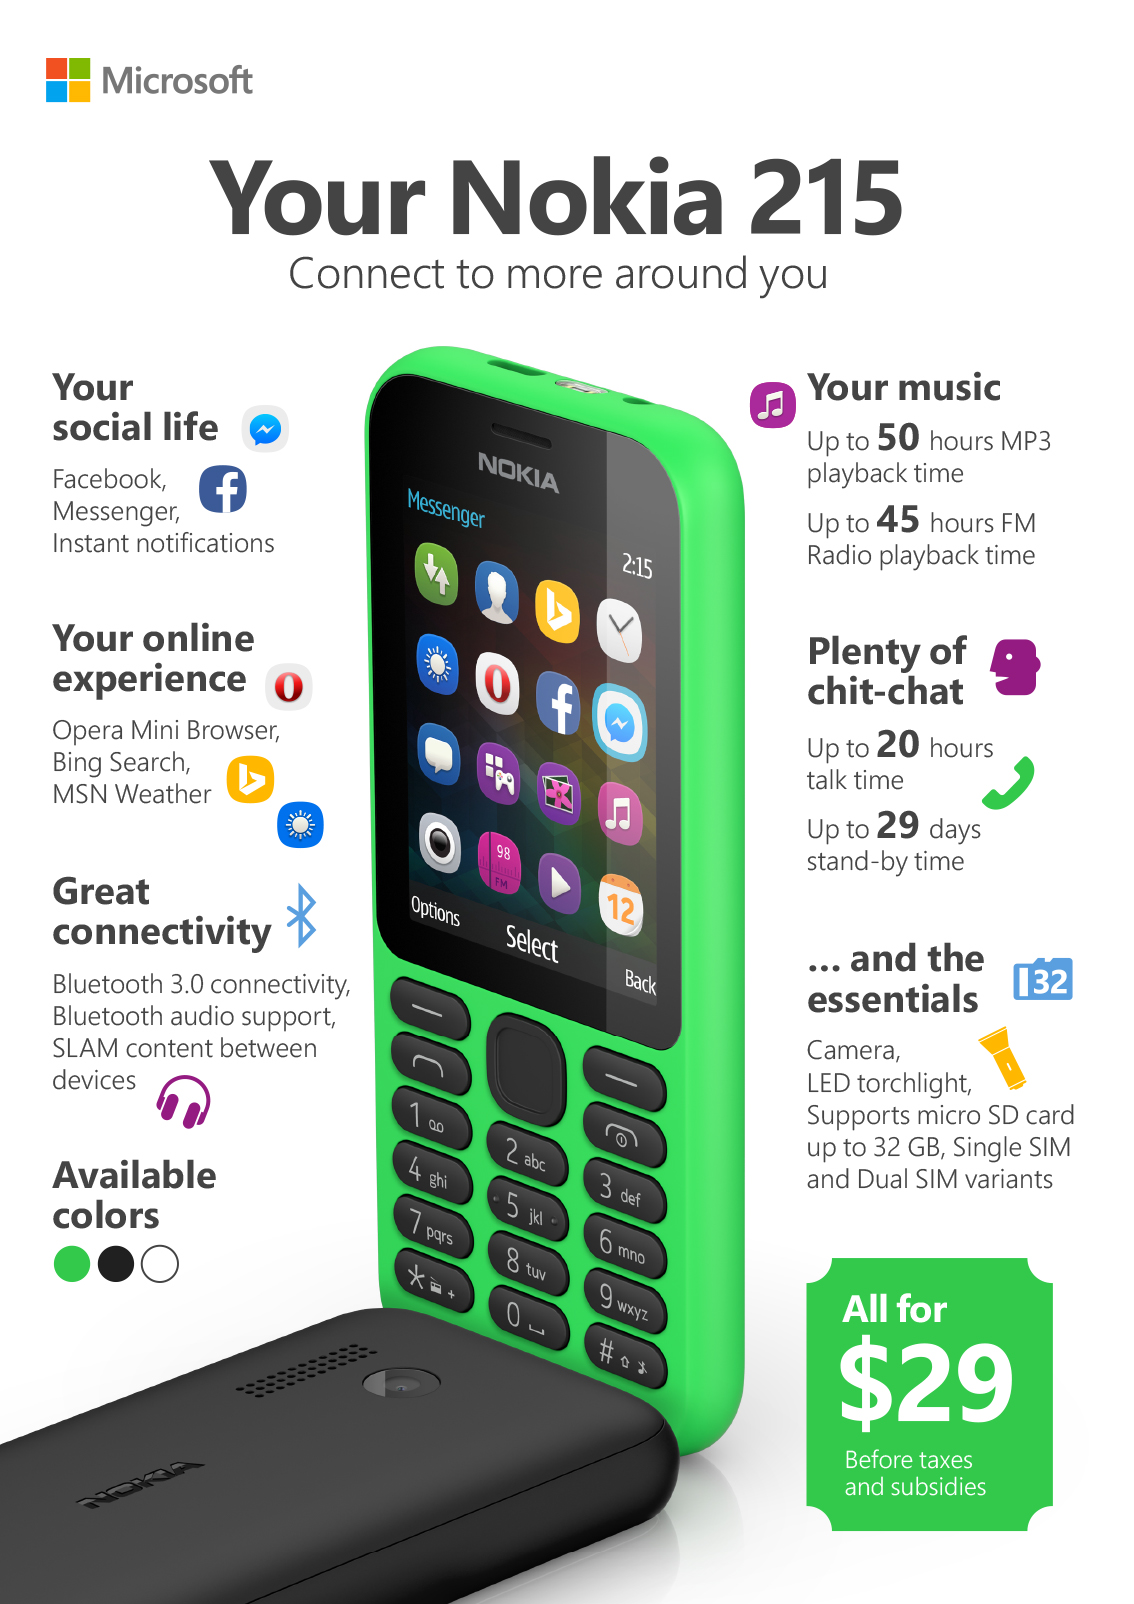 ... with one month battery, FB Messenger instead of Whatsapp - Dignited